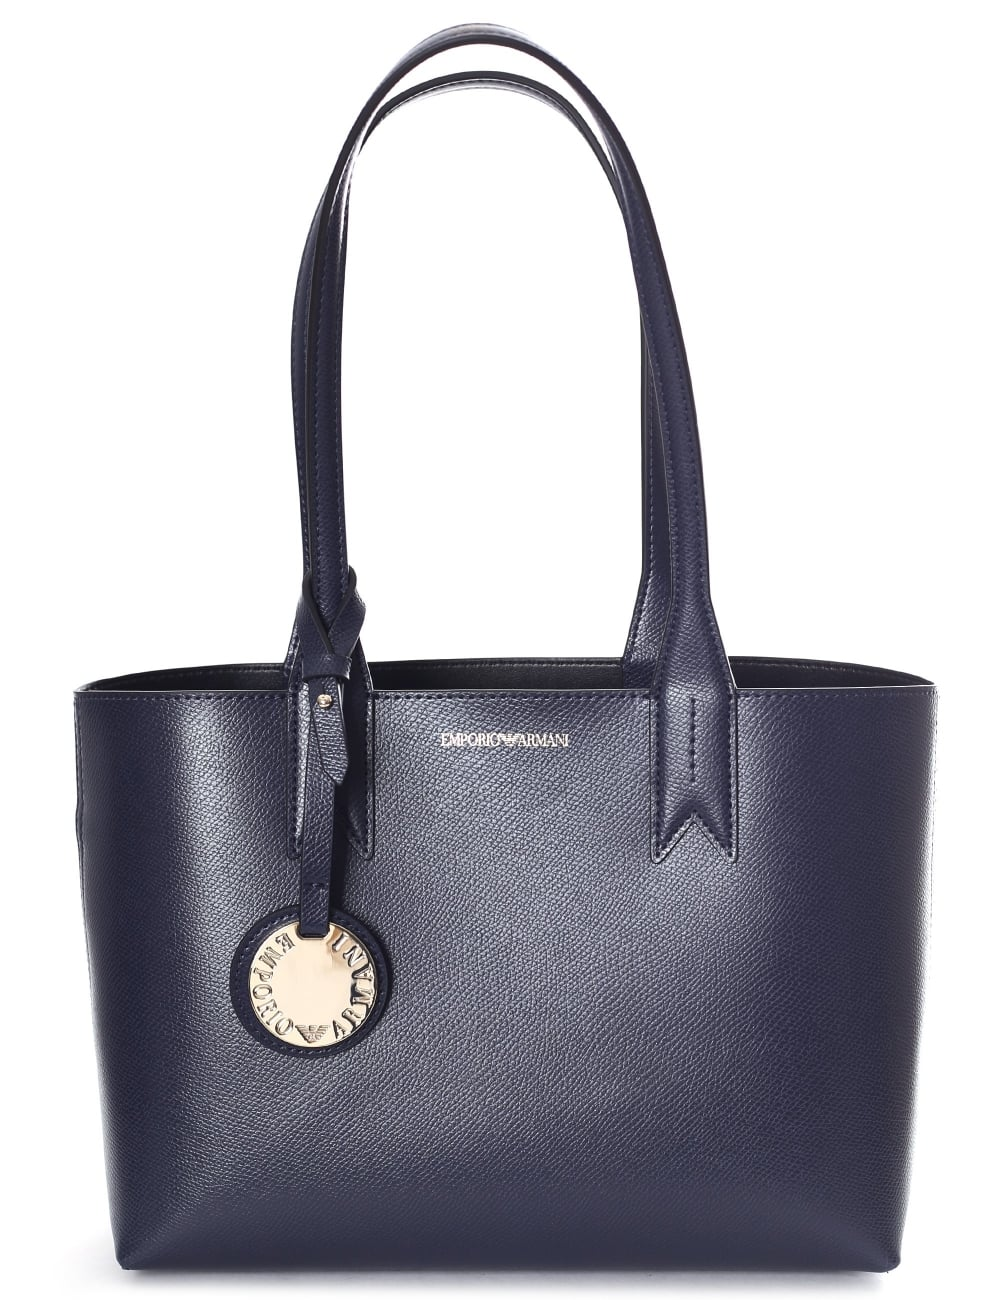 3f8a4bd6630 Emporio Armani Women s Frida Small Shopper Bag